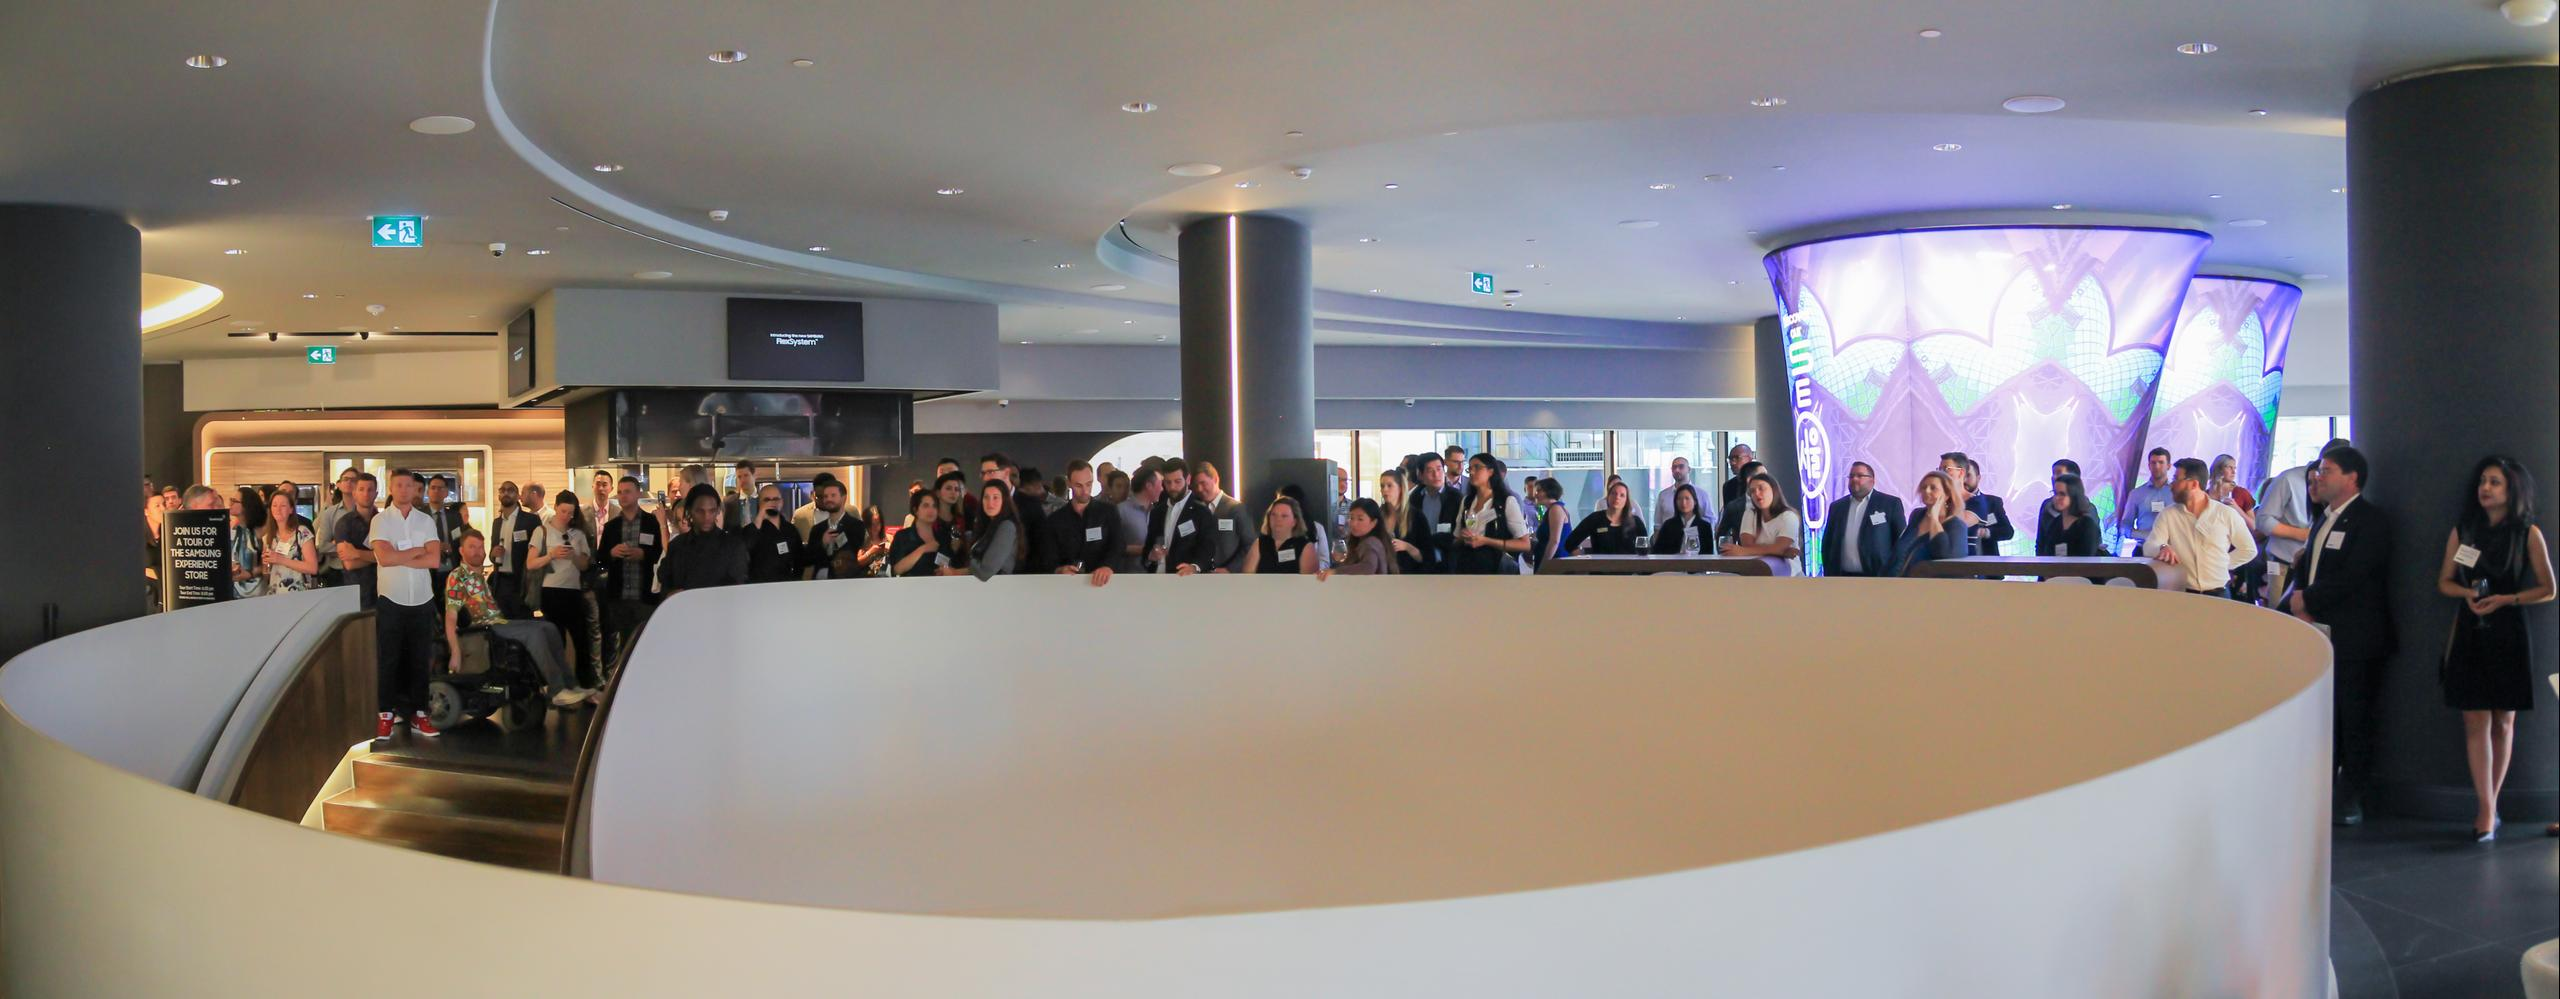 panorama photo of the second floor of the Samsung Experience Store full of people